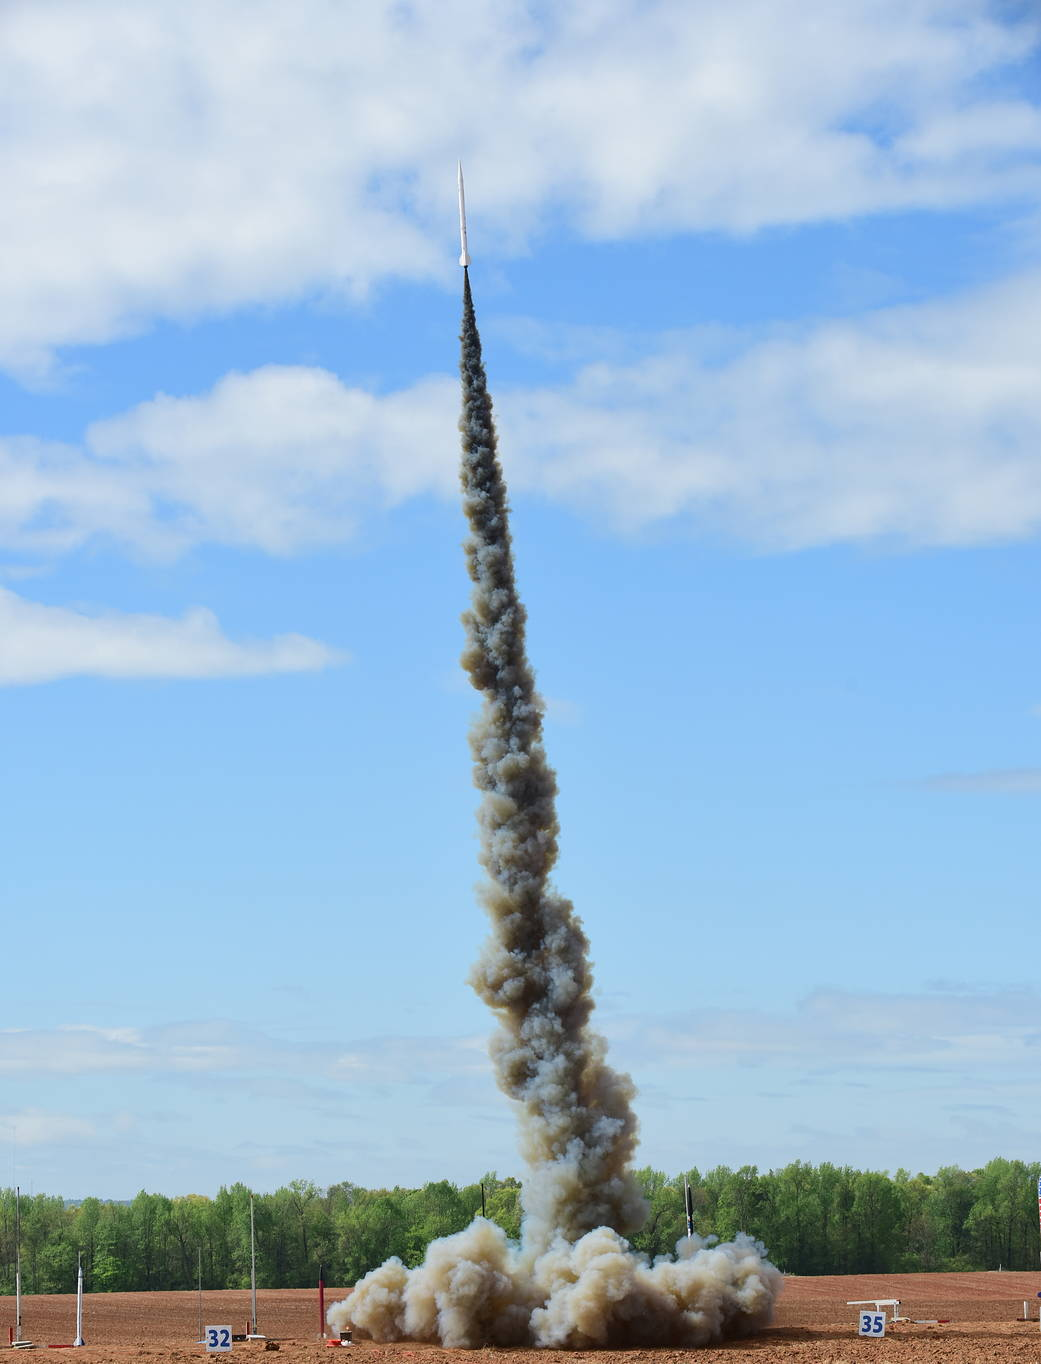 Liftoff of one of dozens of high-powered rockets during the 16th annual Student Launch challenge, April 16, near NASA Marshall